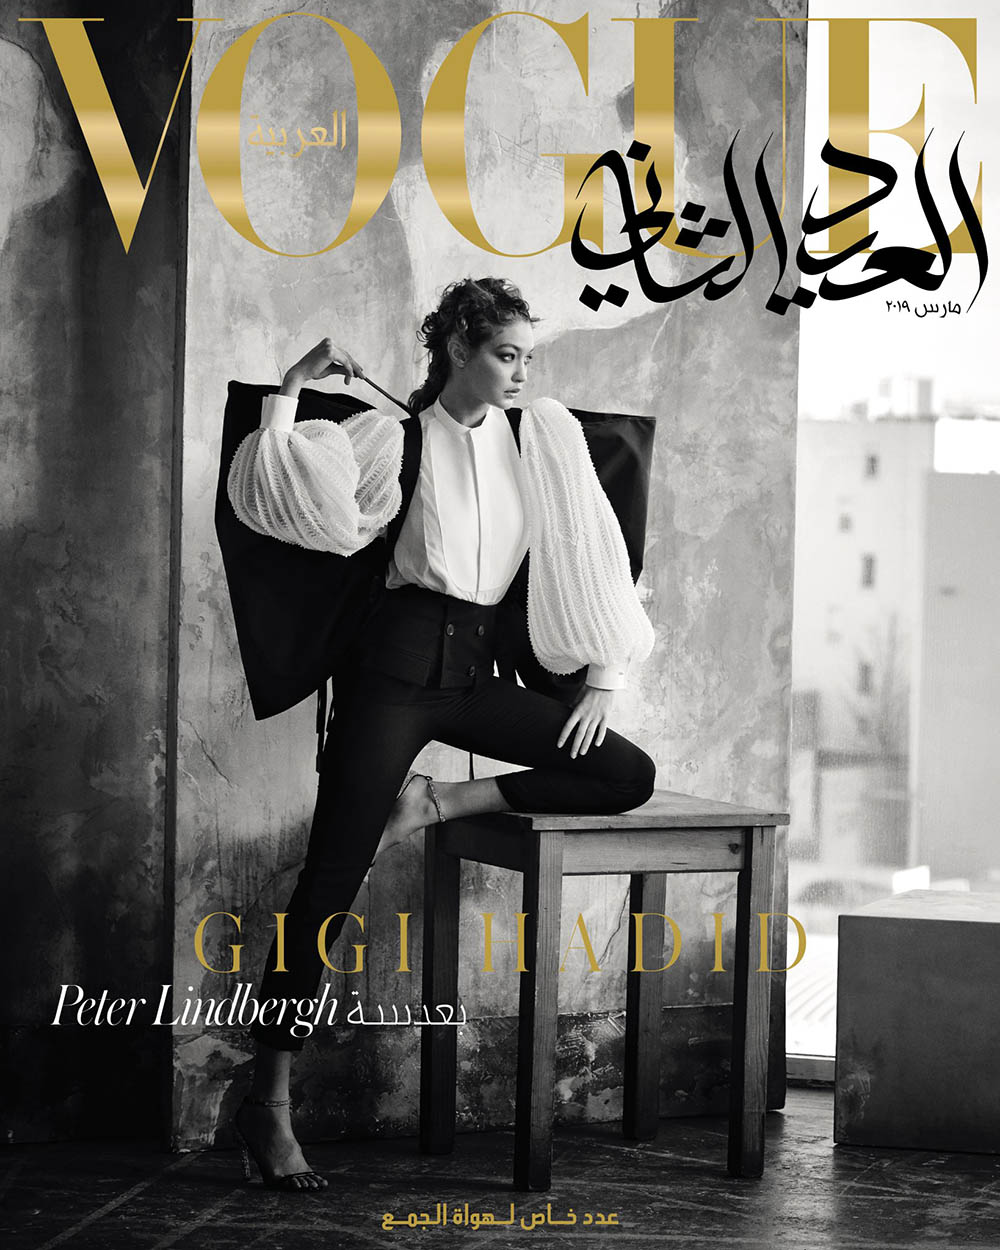 Gigi Hadid covers Vogue Arabia March 2019 by Peter Lindbergh